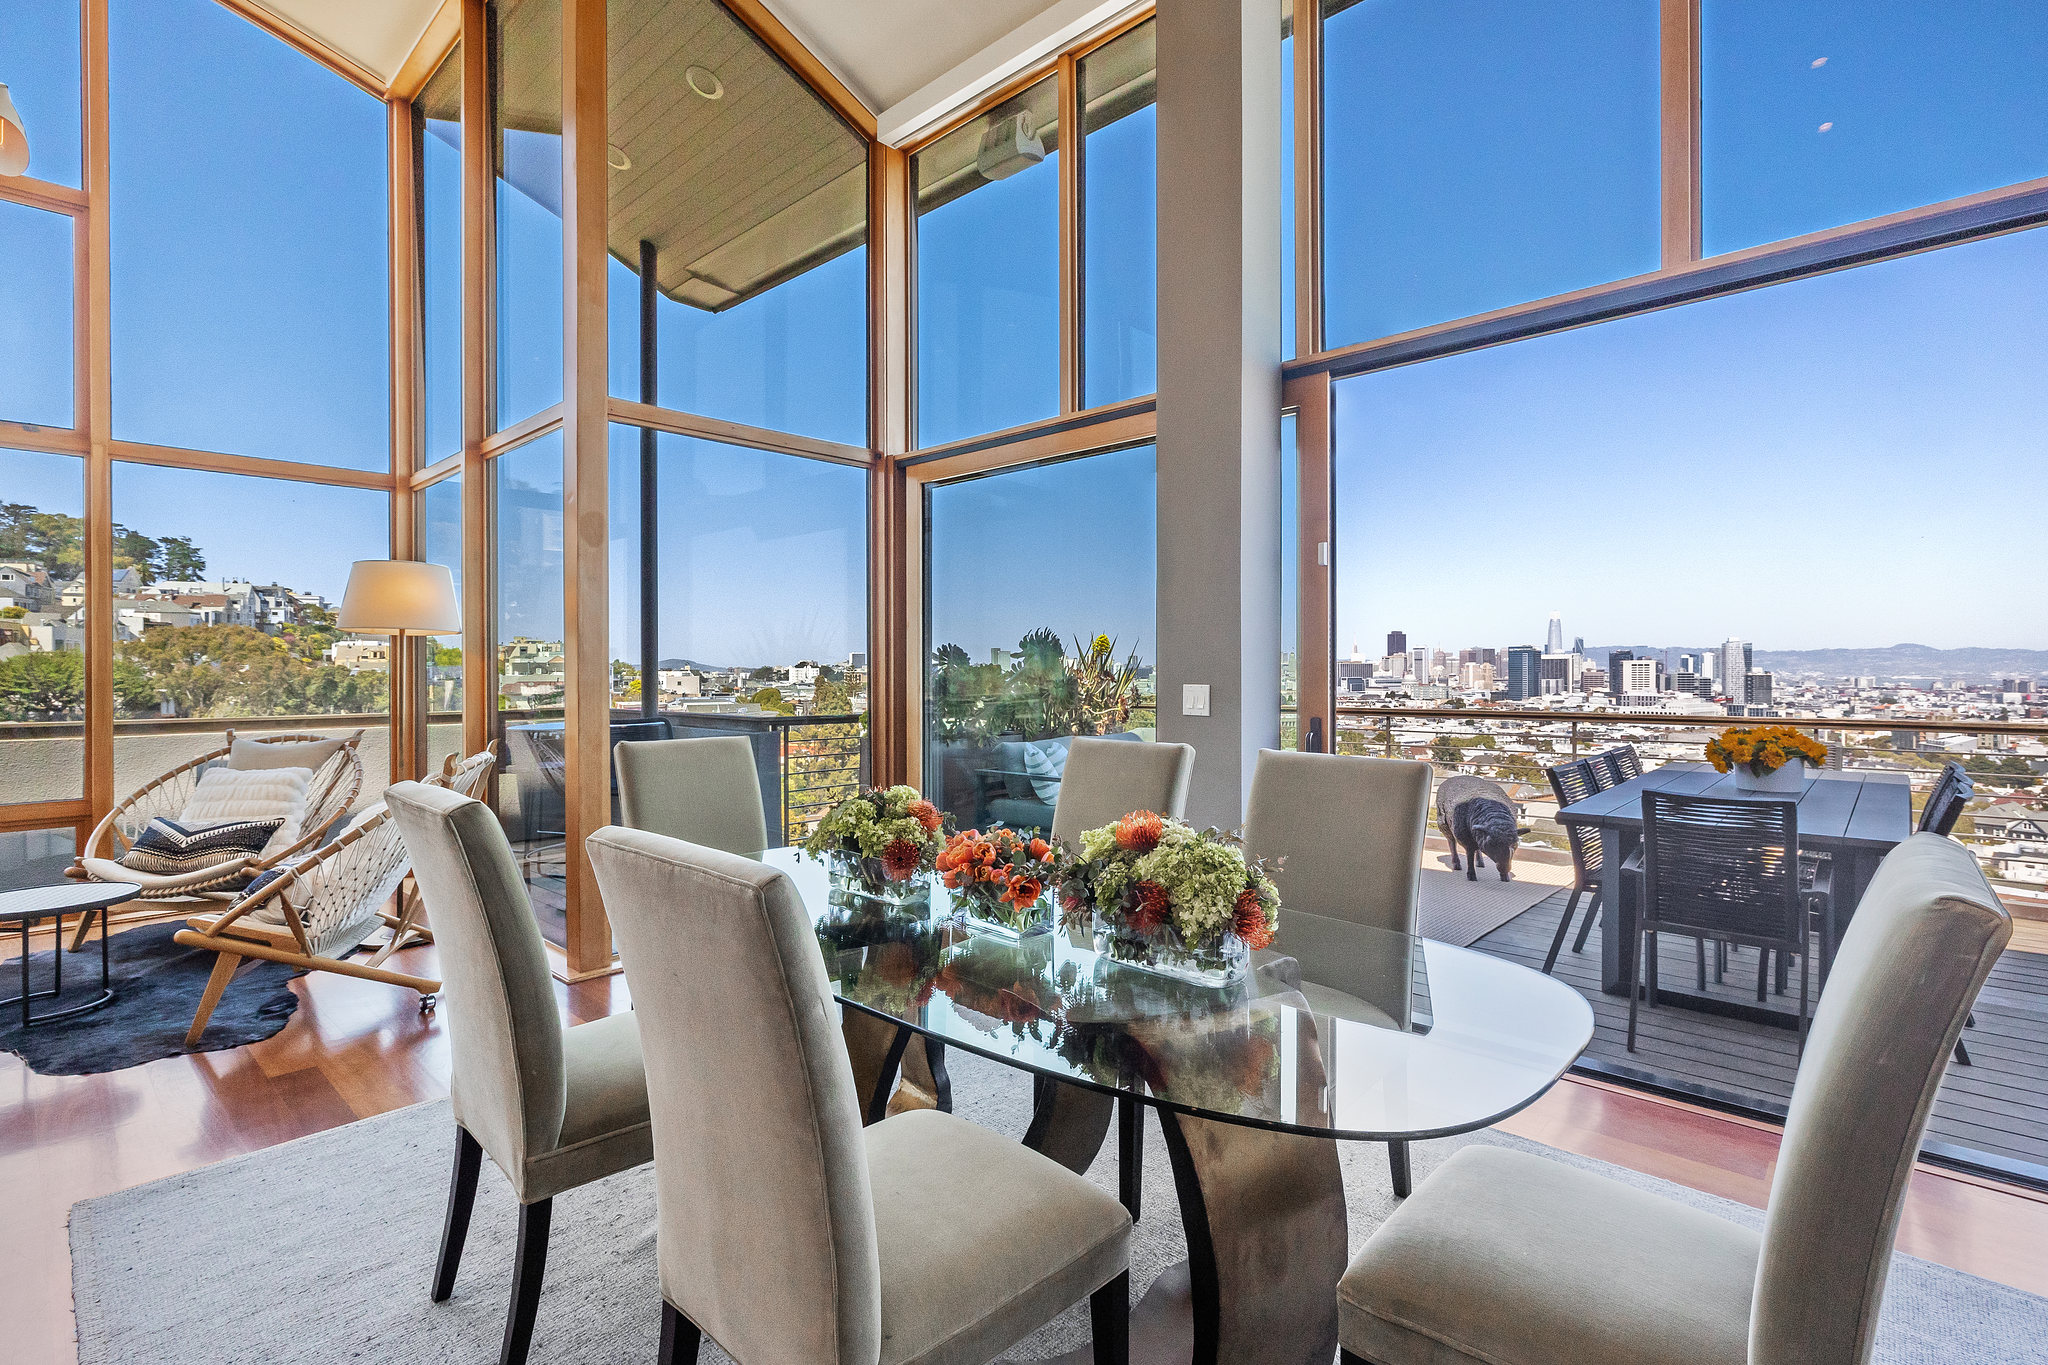 Dining room table surrounded by floor to ceiling windows with natural light coming in